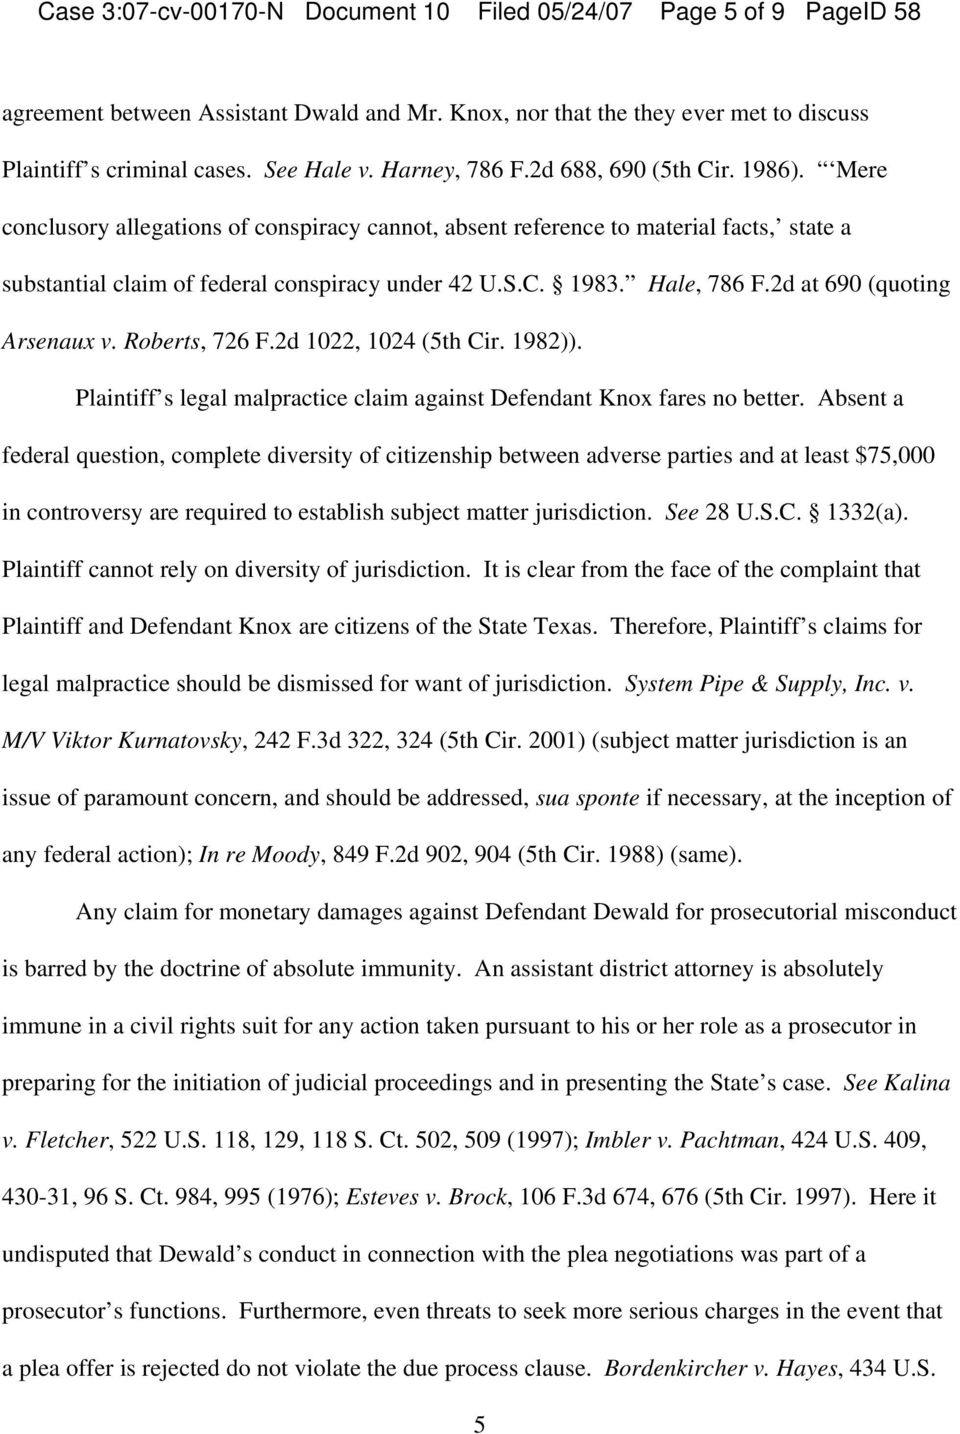 Hale, 786 F.2d at 690 (quoting Arsenaux v. Roberts, 726 F.2d 1022, 1024 (5th Cir. 1982)). Plaintiff s legal malpractice claim against Defendant Knox fares no better.